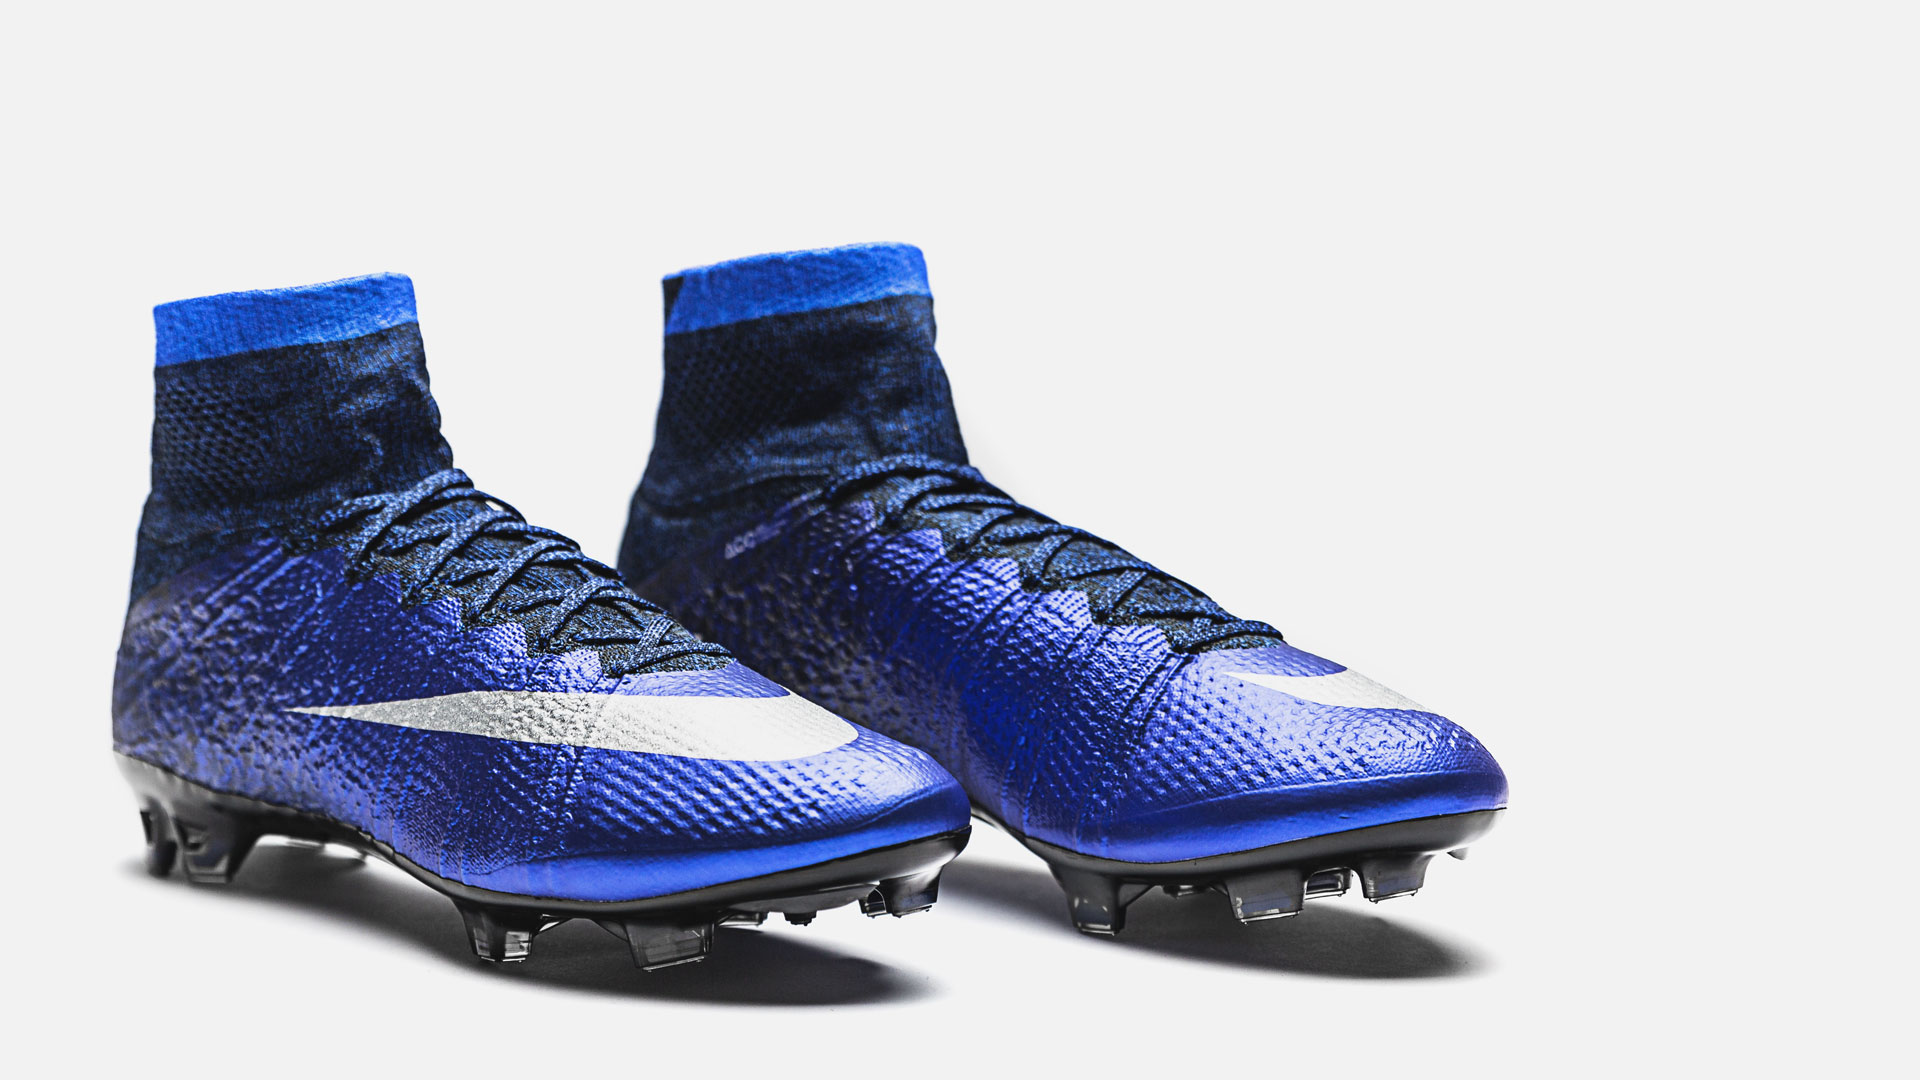 381ba73aacc Nike Mercurial Superfly CR7 Chapter 2: Natural Diamond